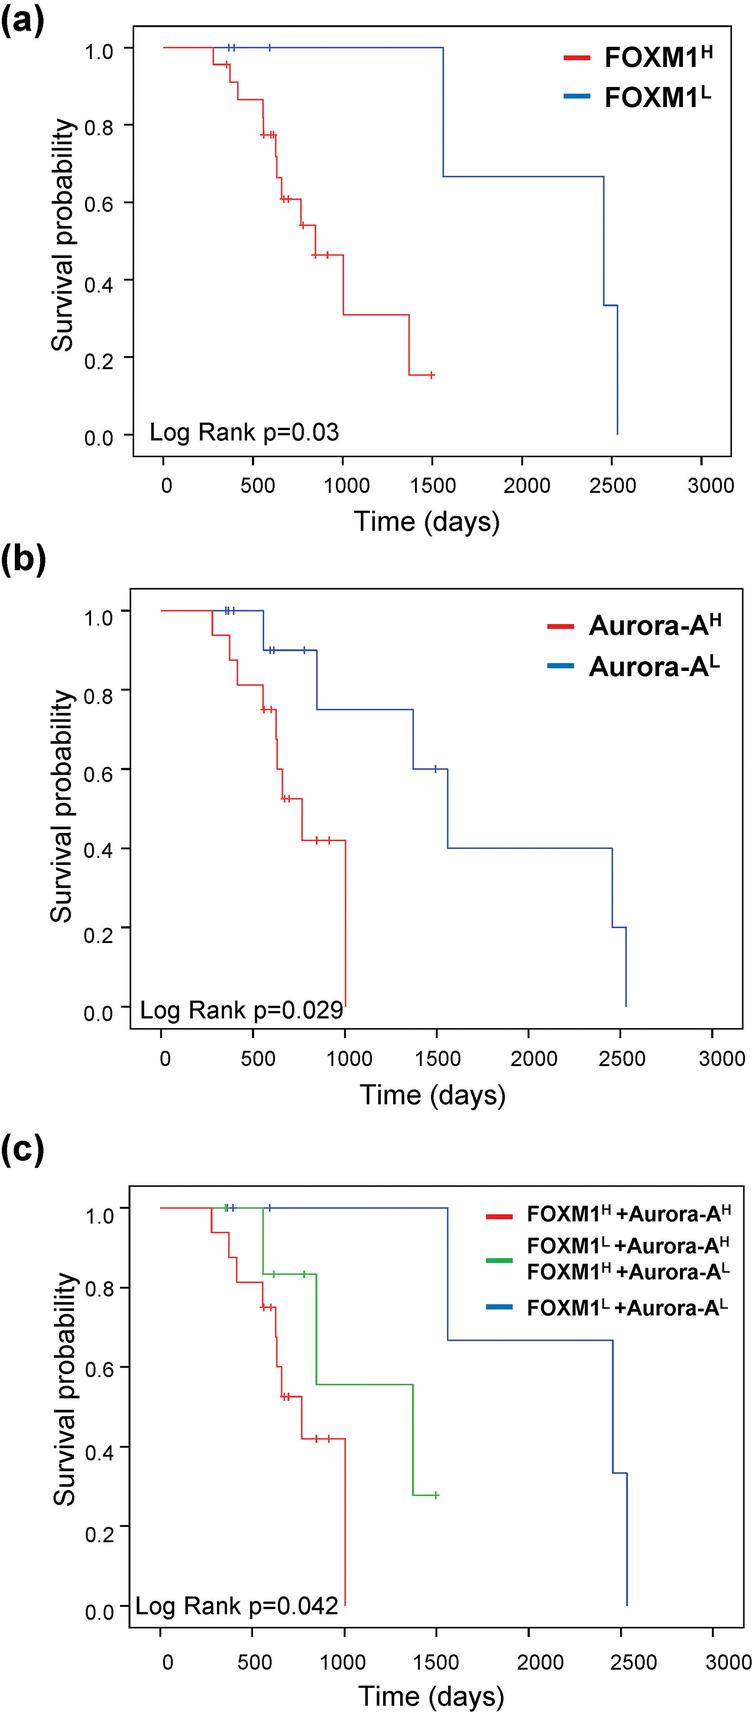 FOXM1 and Aurora-A expression predict the prognosis of sorafenib-treated patients in HCC. KaplanMeier curves of overall survival probability were estimated with different FOXM1 (a), Aurora-A (b), and FOXM1/Aurora-A (c) expression status in sorafenib-treated patients obtained from the TCGA dataset (n= 29).